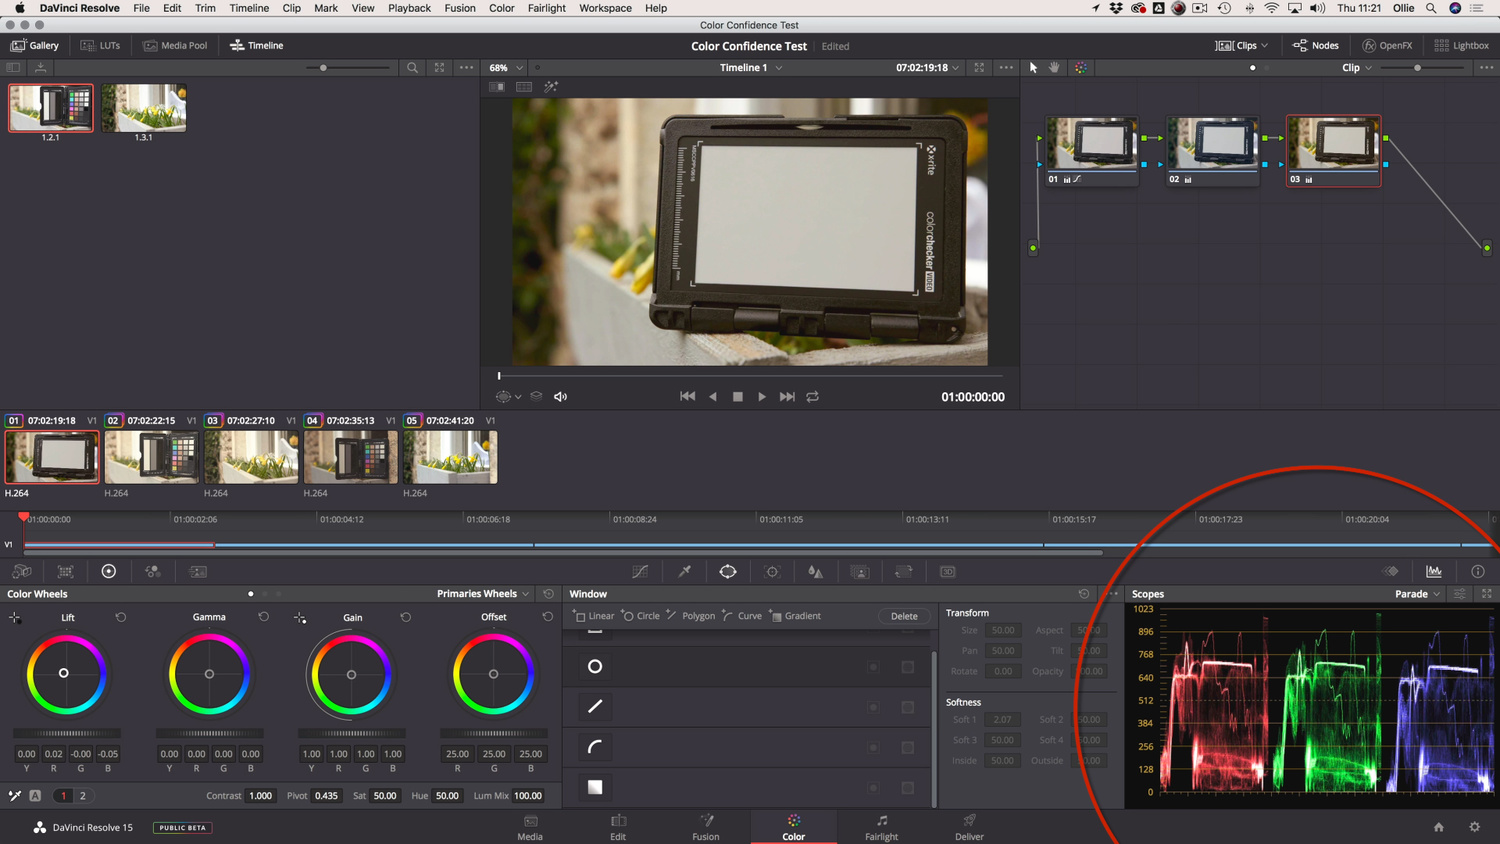 Fstoppers Reviews the Mastering Color Course on Color